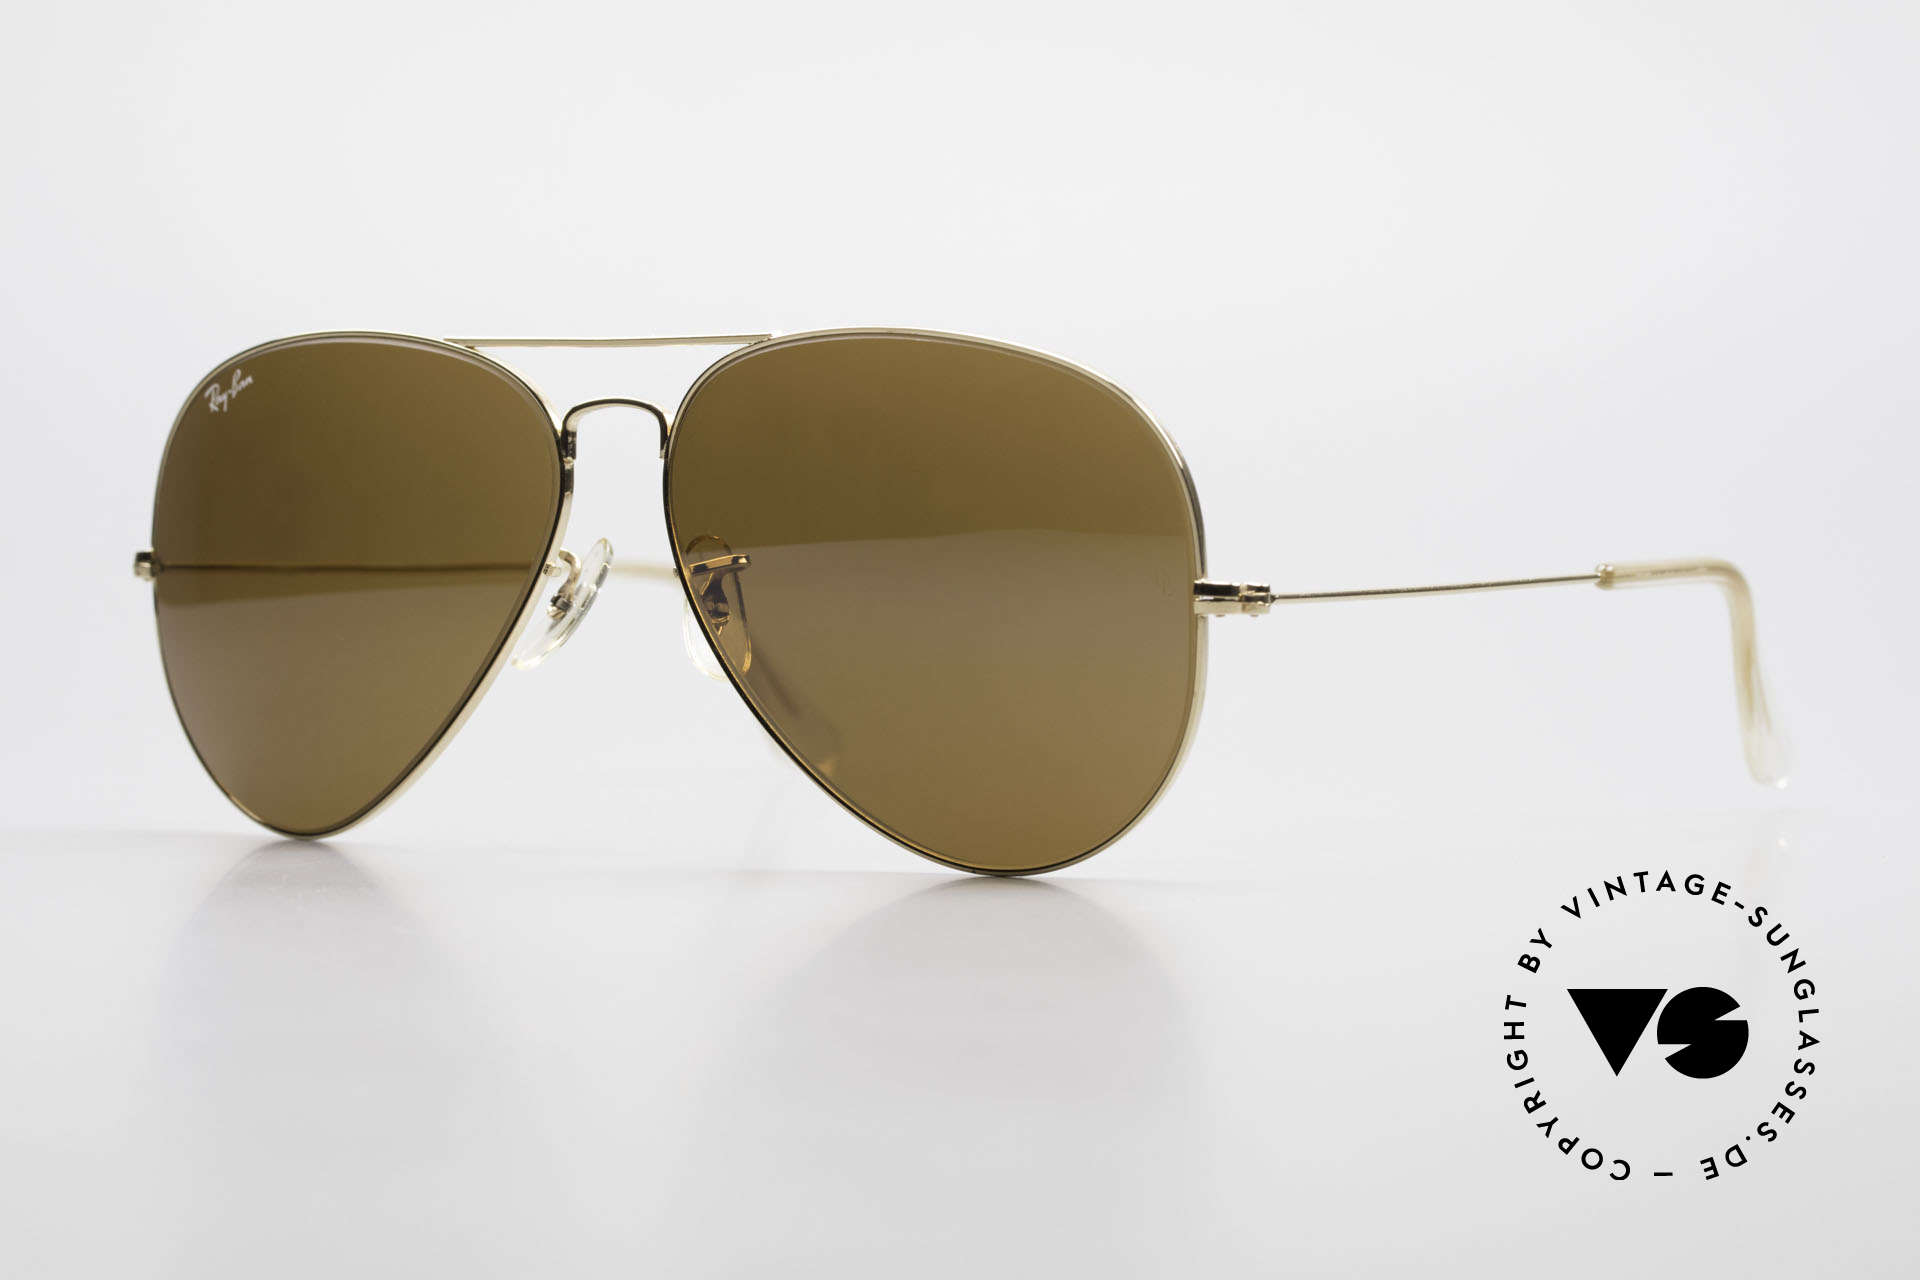 Ray Ban Large Metal II Old Ray-Ban B&L USA Shades, the classic Ray Ban USA sunglasses par excellence, Made for Men